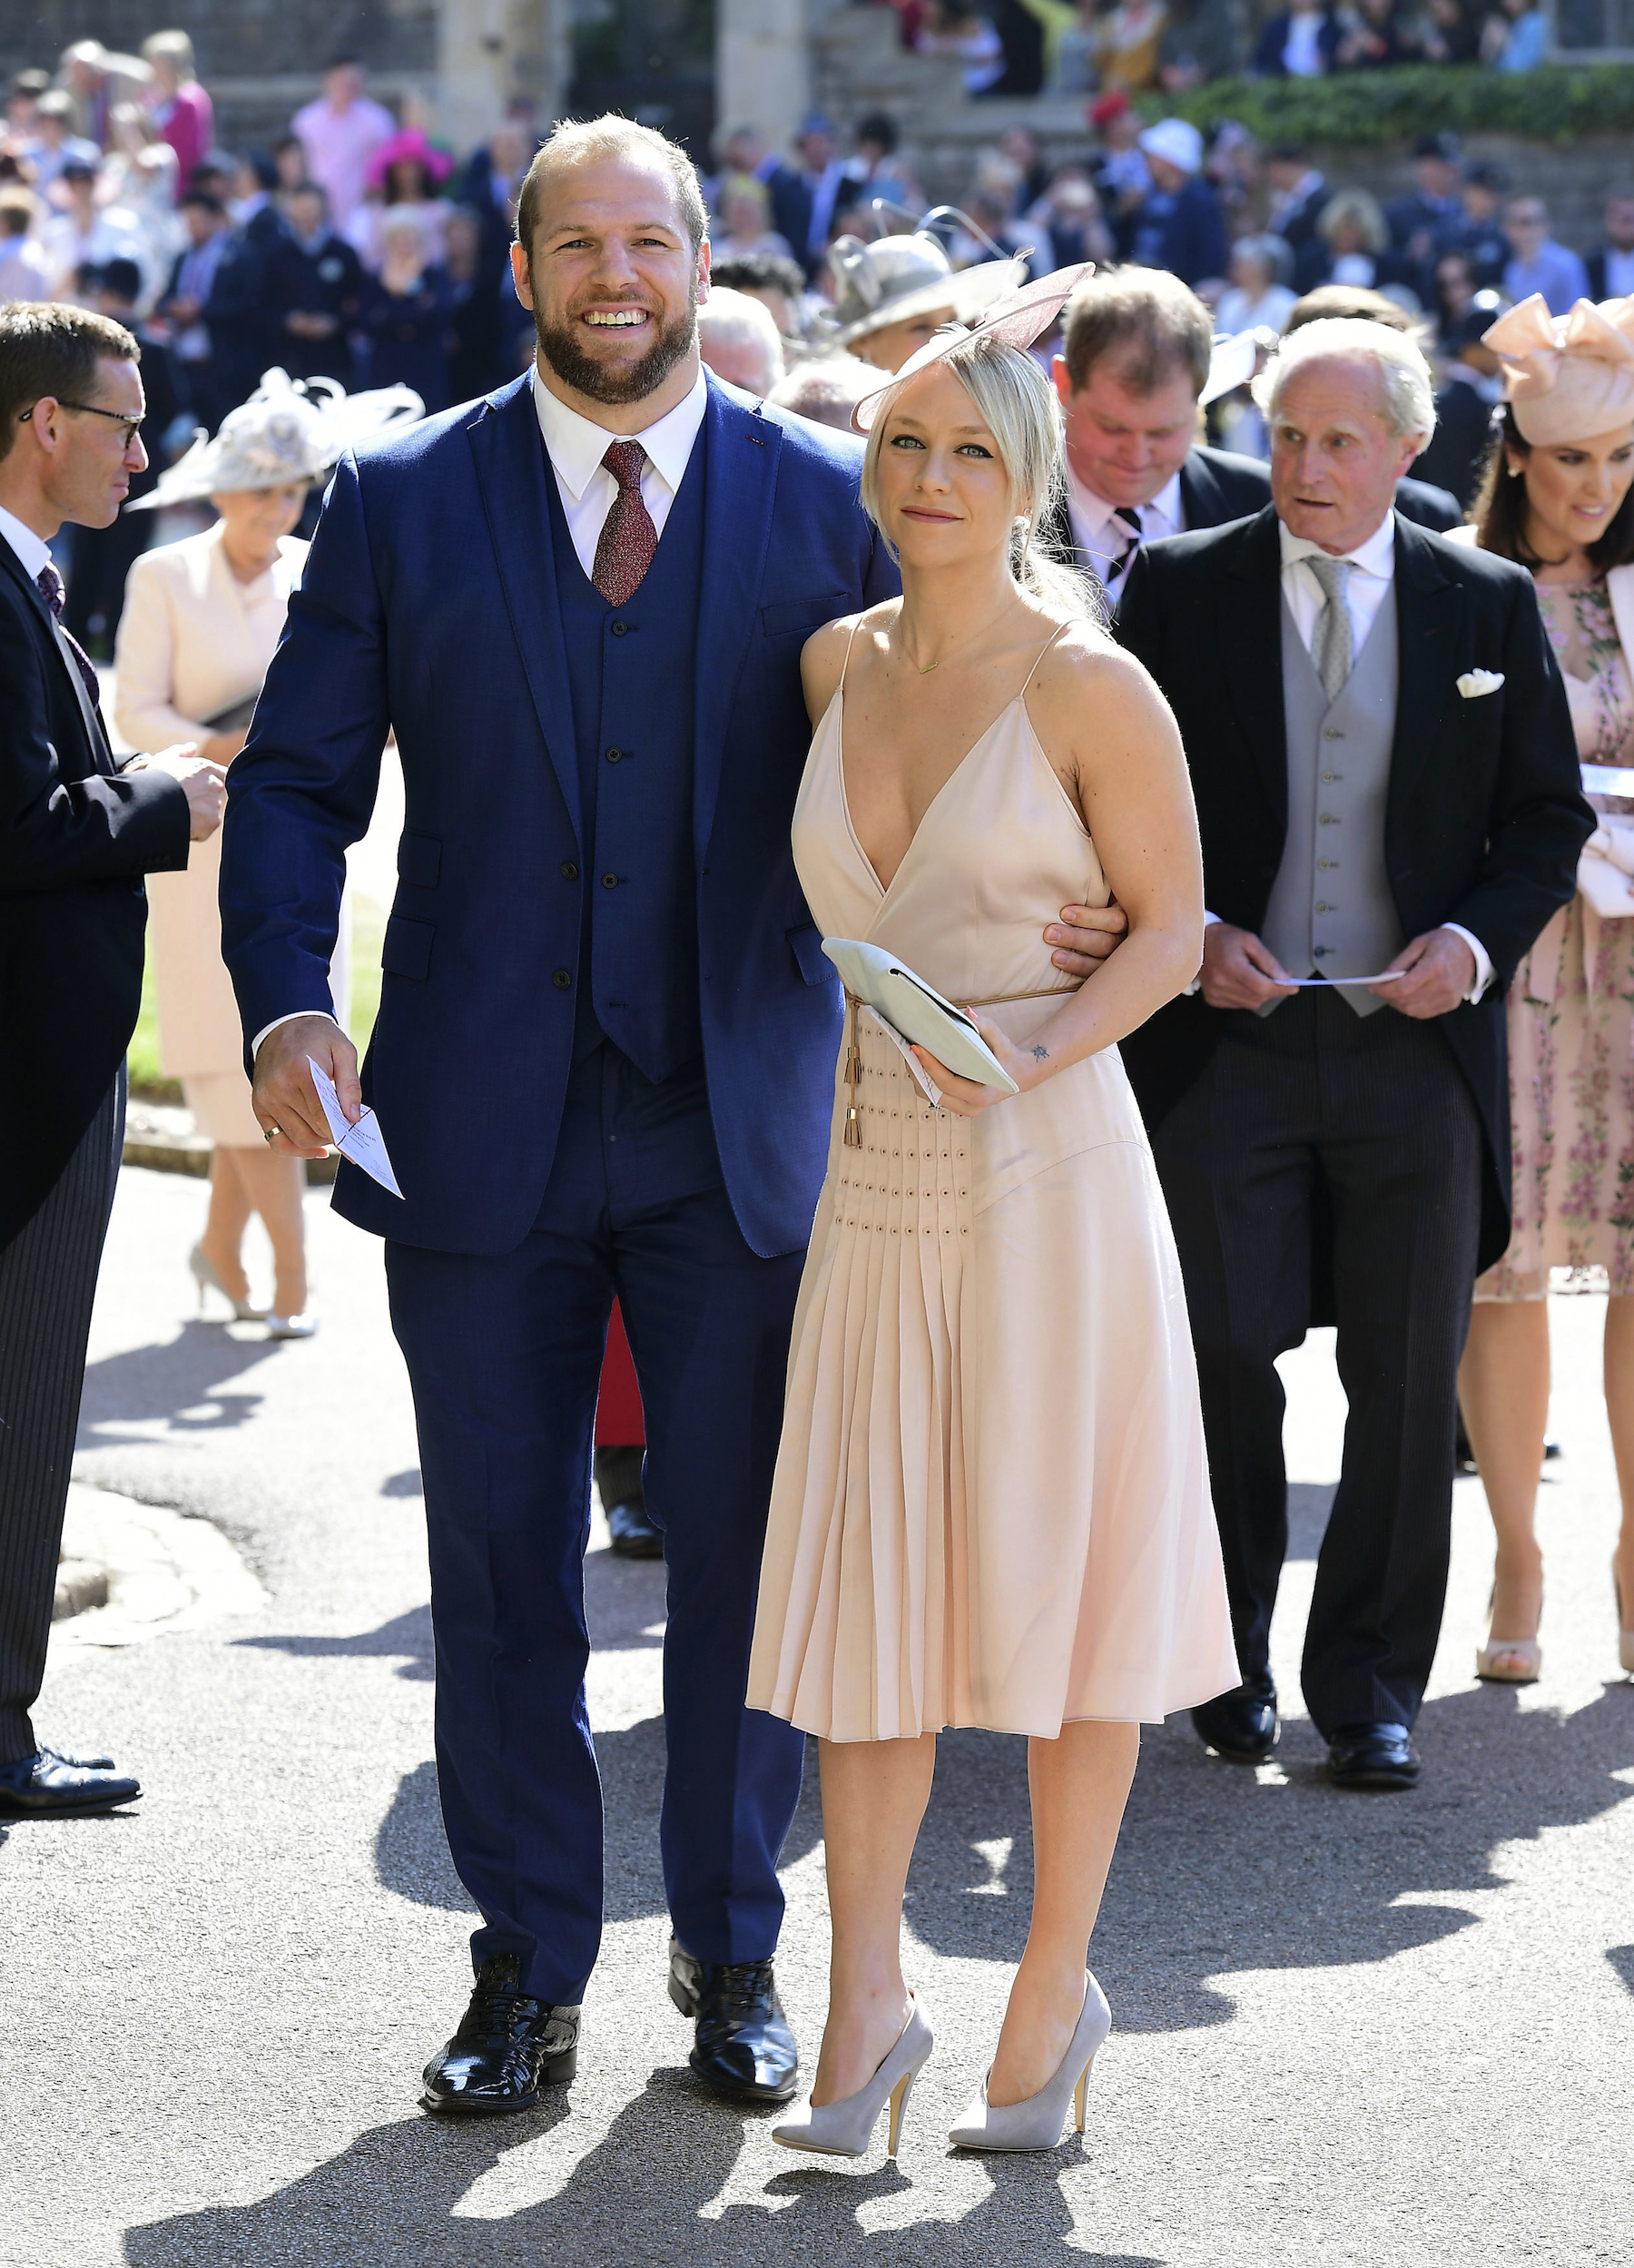 "<div class=""meta image-caption""><div class=""origin-logo origin-image ap""><span>AP</span></div><span class=""caption-text"">James Haskell and Chloe Madeley arrives at St George's Chapel at Windsor Castle for the wedding of Meghan Markle and Prince Harry. (Ian West/PA Wire)</span></div>"